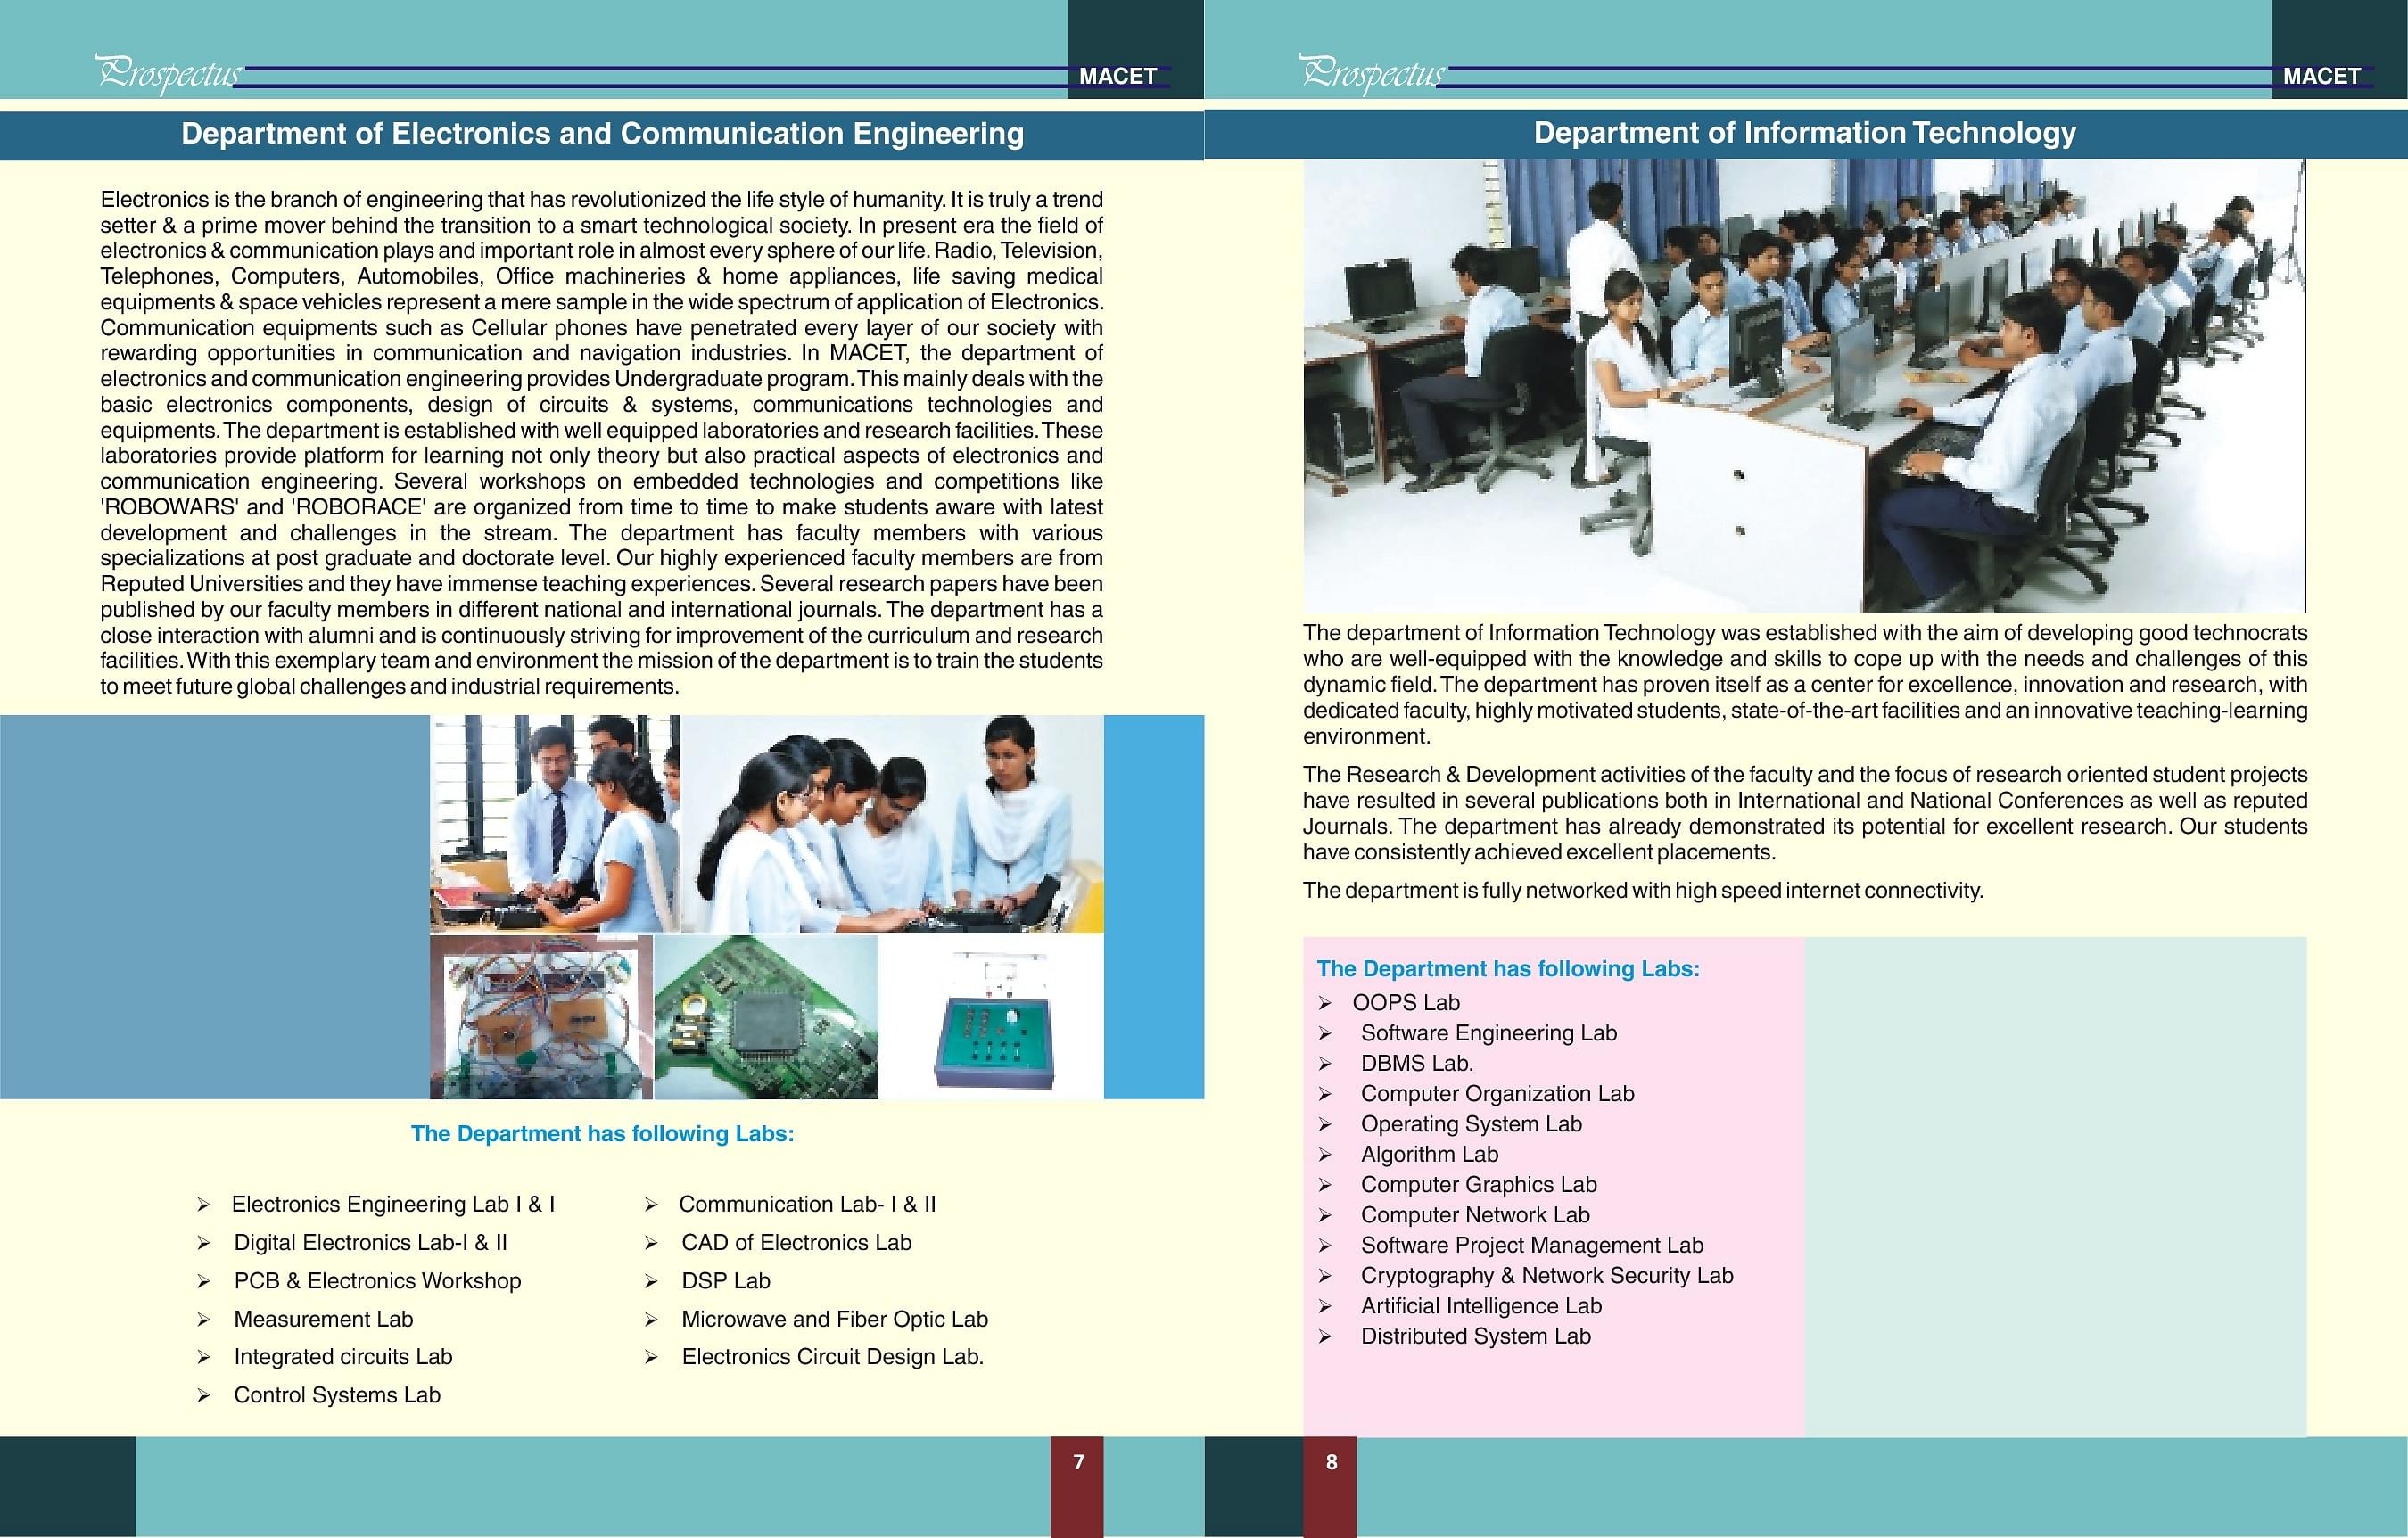 Maharaja Agrasen College Of Engineering Technology Macet Jigmod Electronic Circuit Building System Electronicslab 2017prospectus